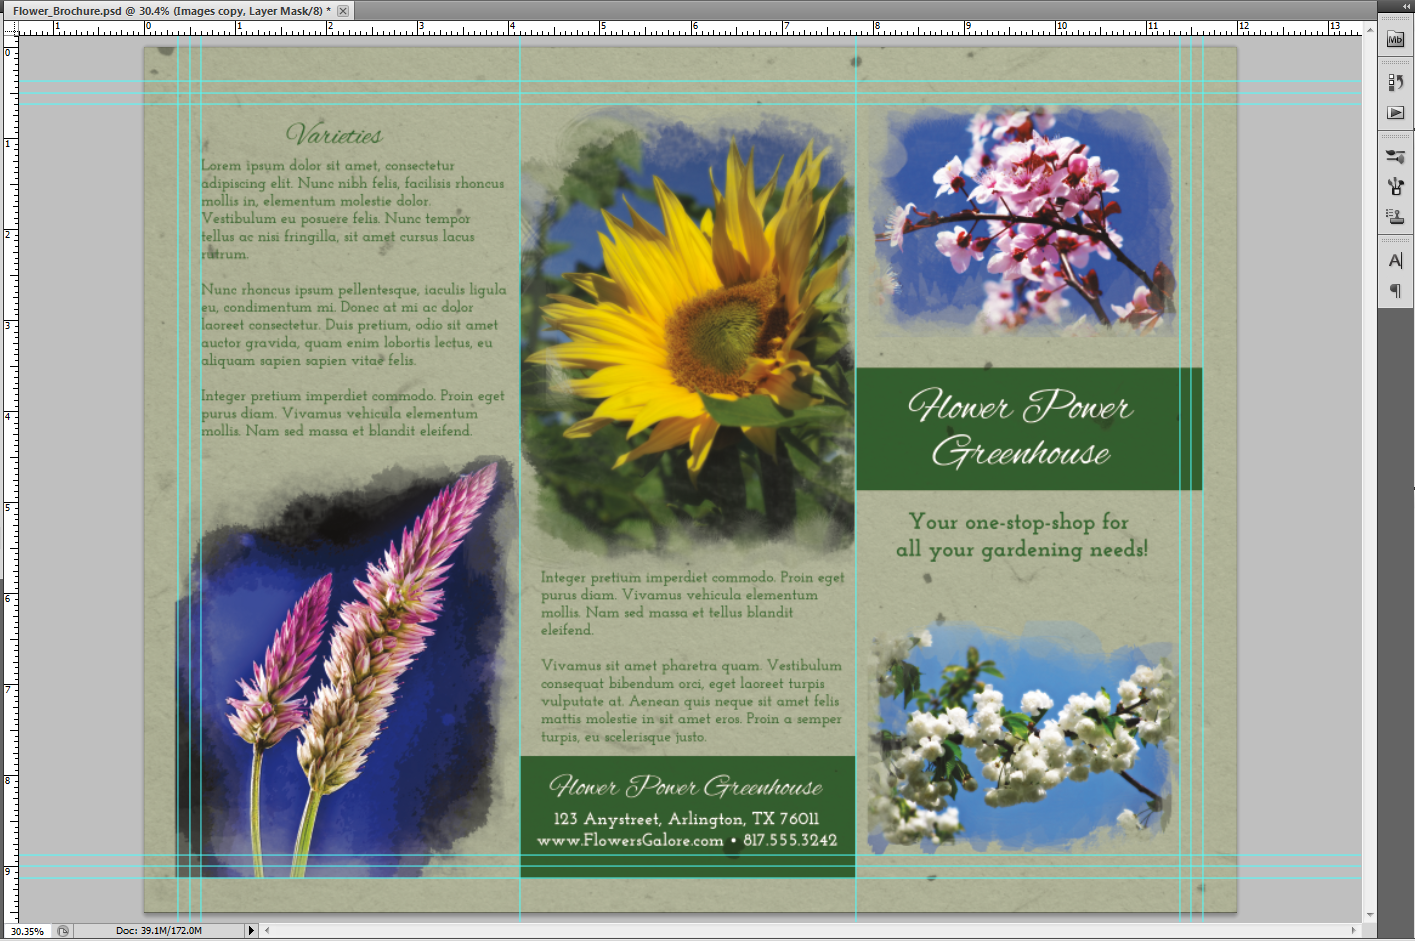 Image of finalized brochure with images and text.